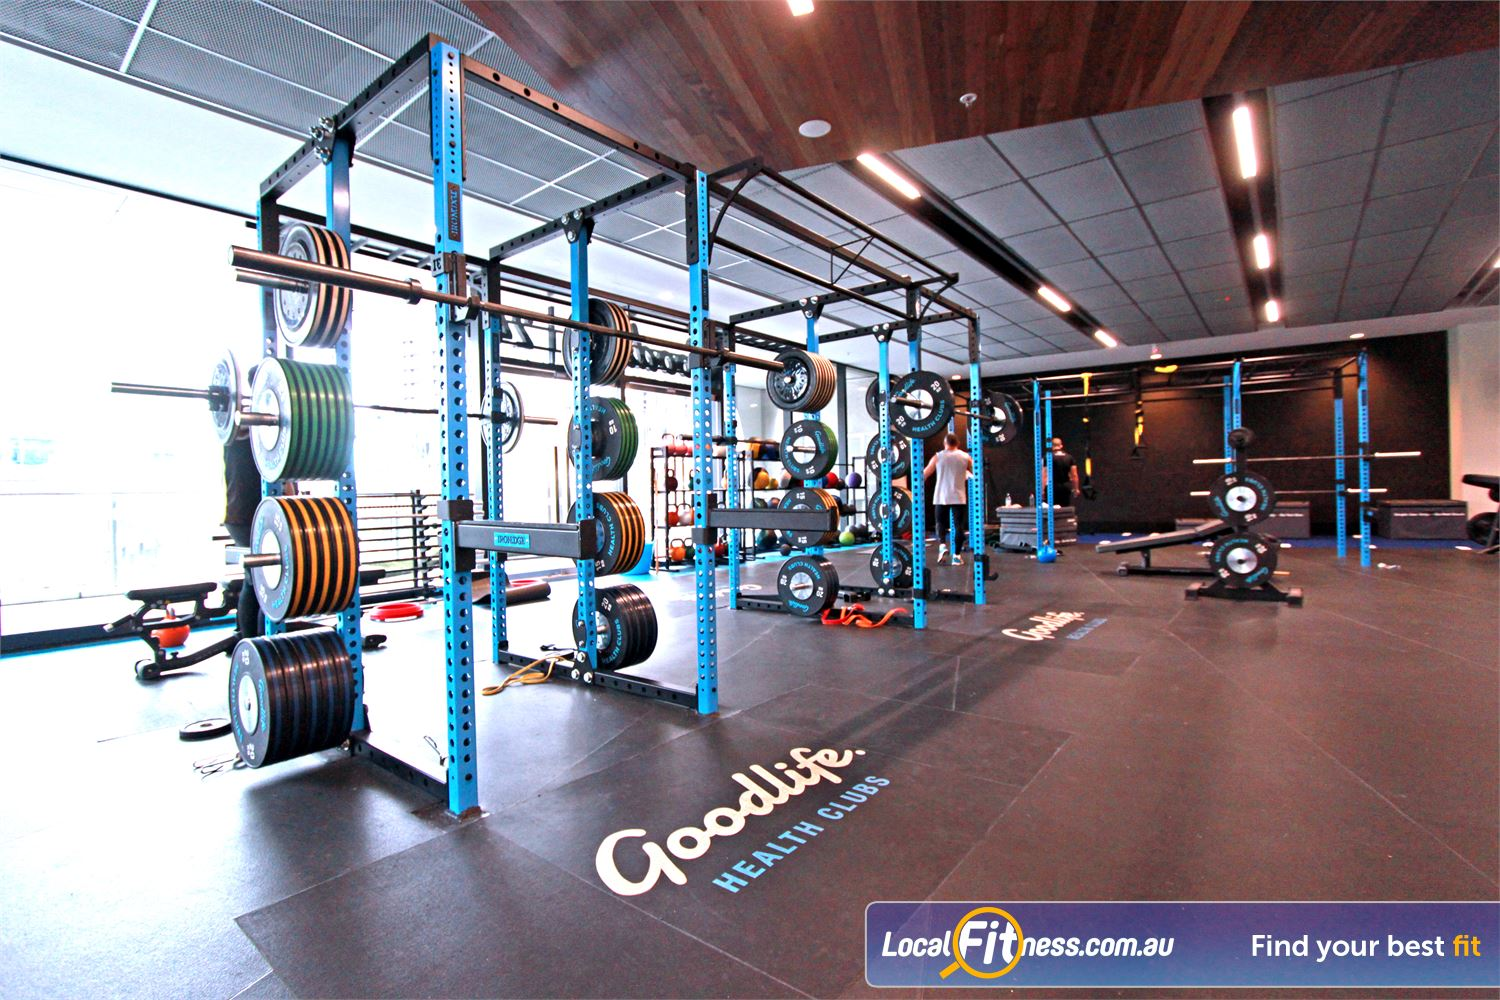 Goodlife Health Clubs Near North Melbourne Heavy duty Olympic platforms and bumper plates for serious strength training.